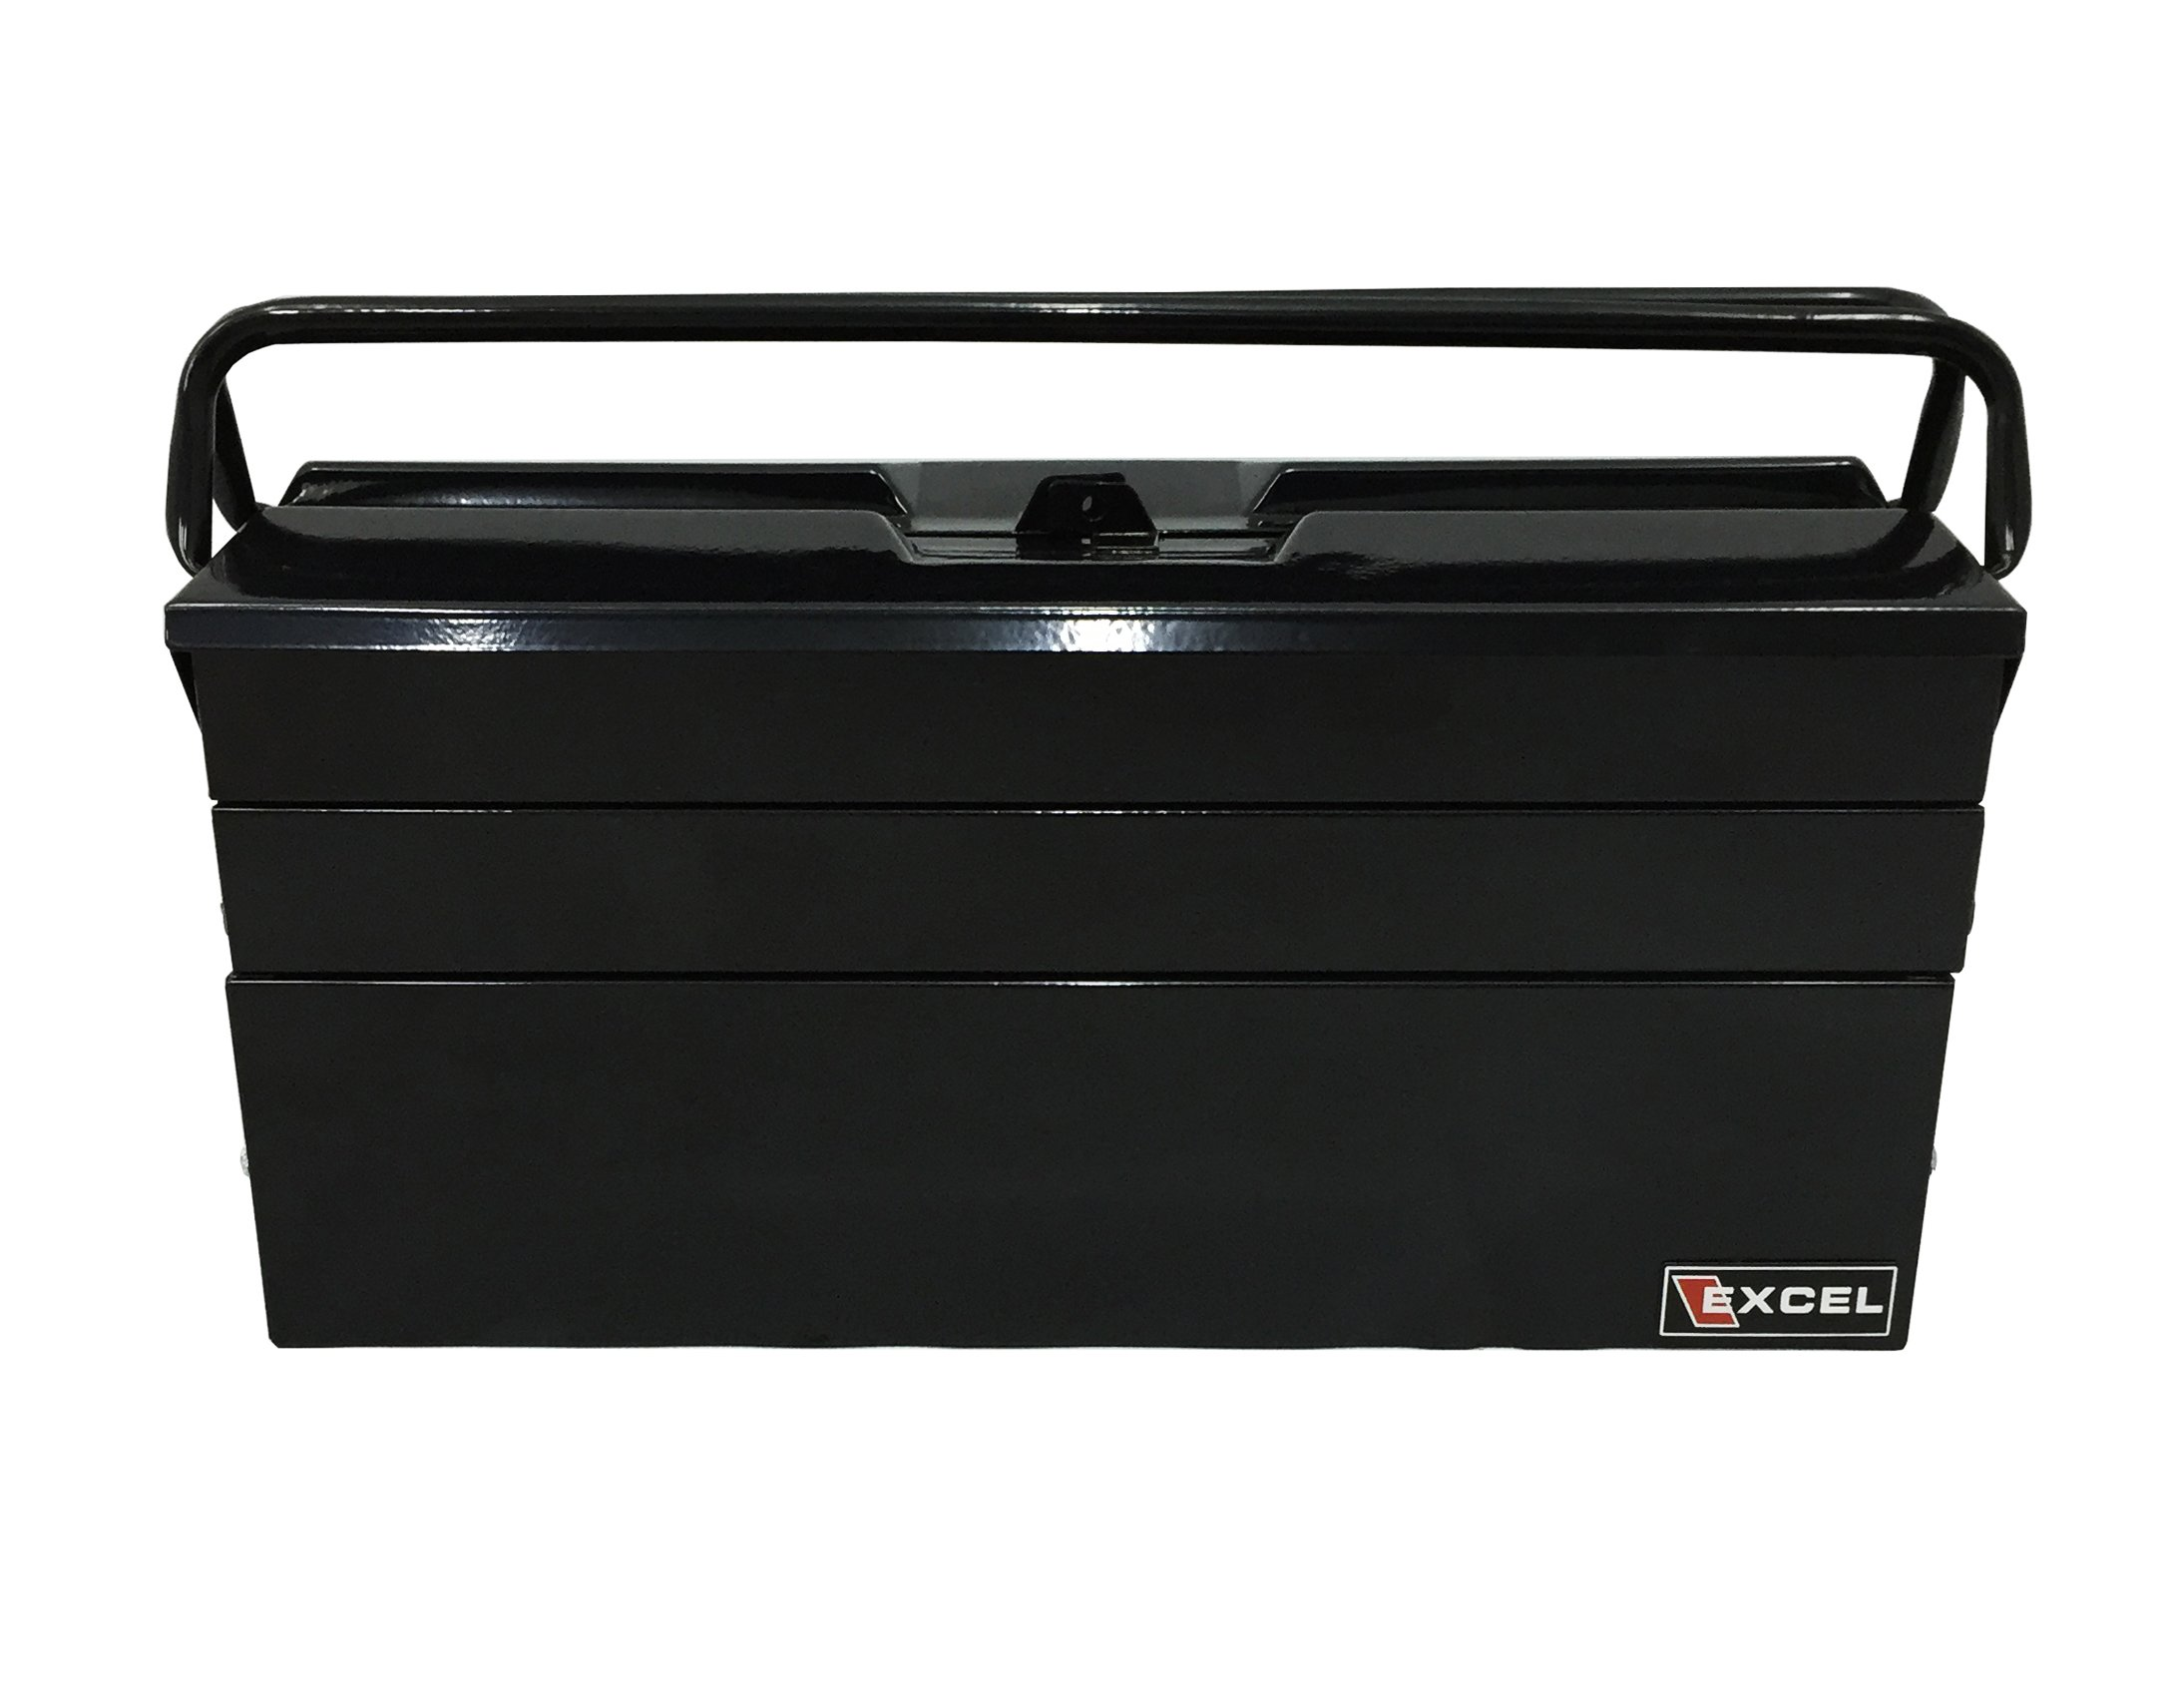 Excel TB122B-Black 19-Inch Cantilever Steel Tool Box, Black